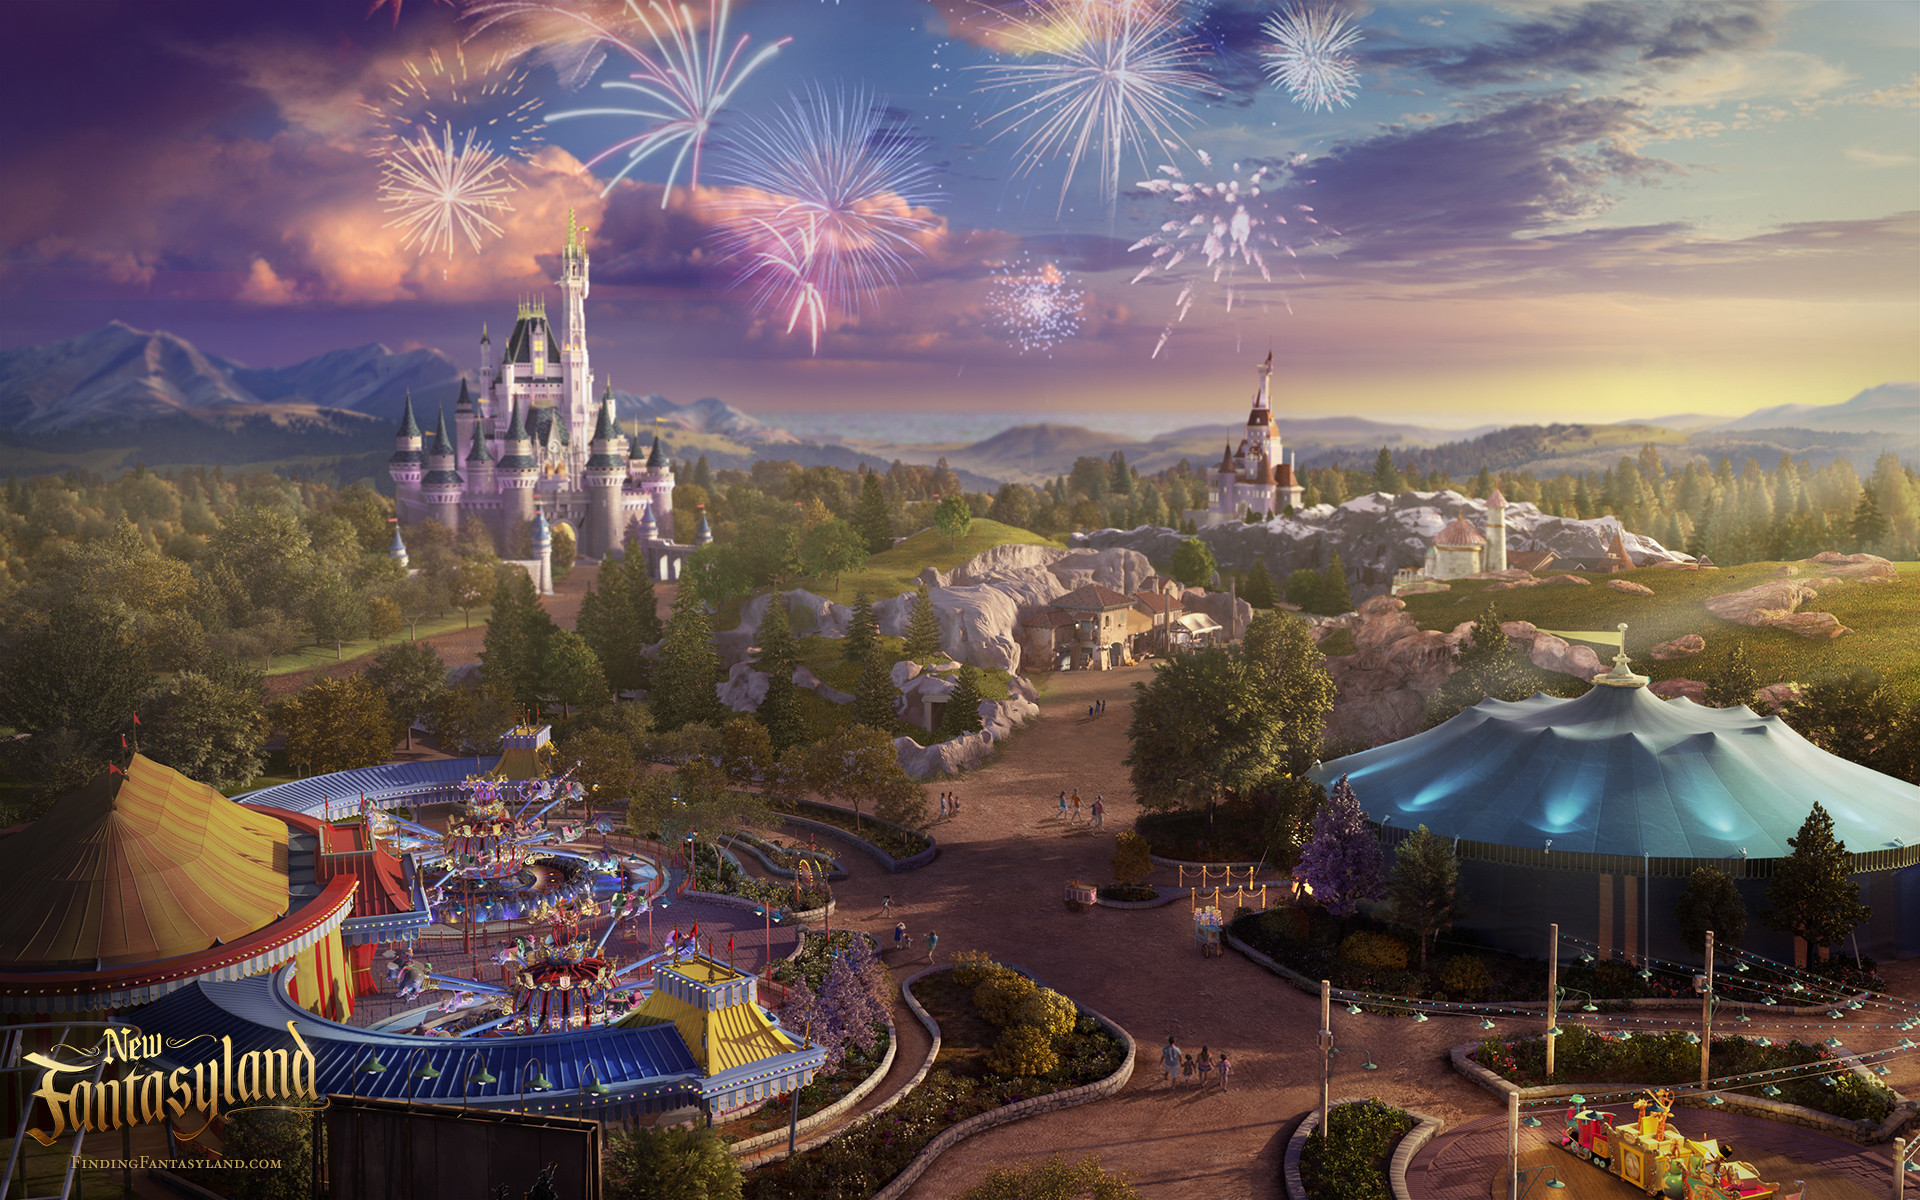 1920x1200 26 best Disney Wallpaper images on Pinterest | Disney wallpaper, Disney  cruise/plan and Disney parks